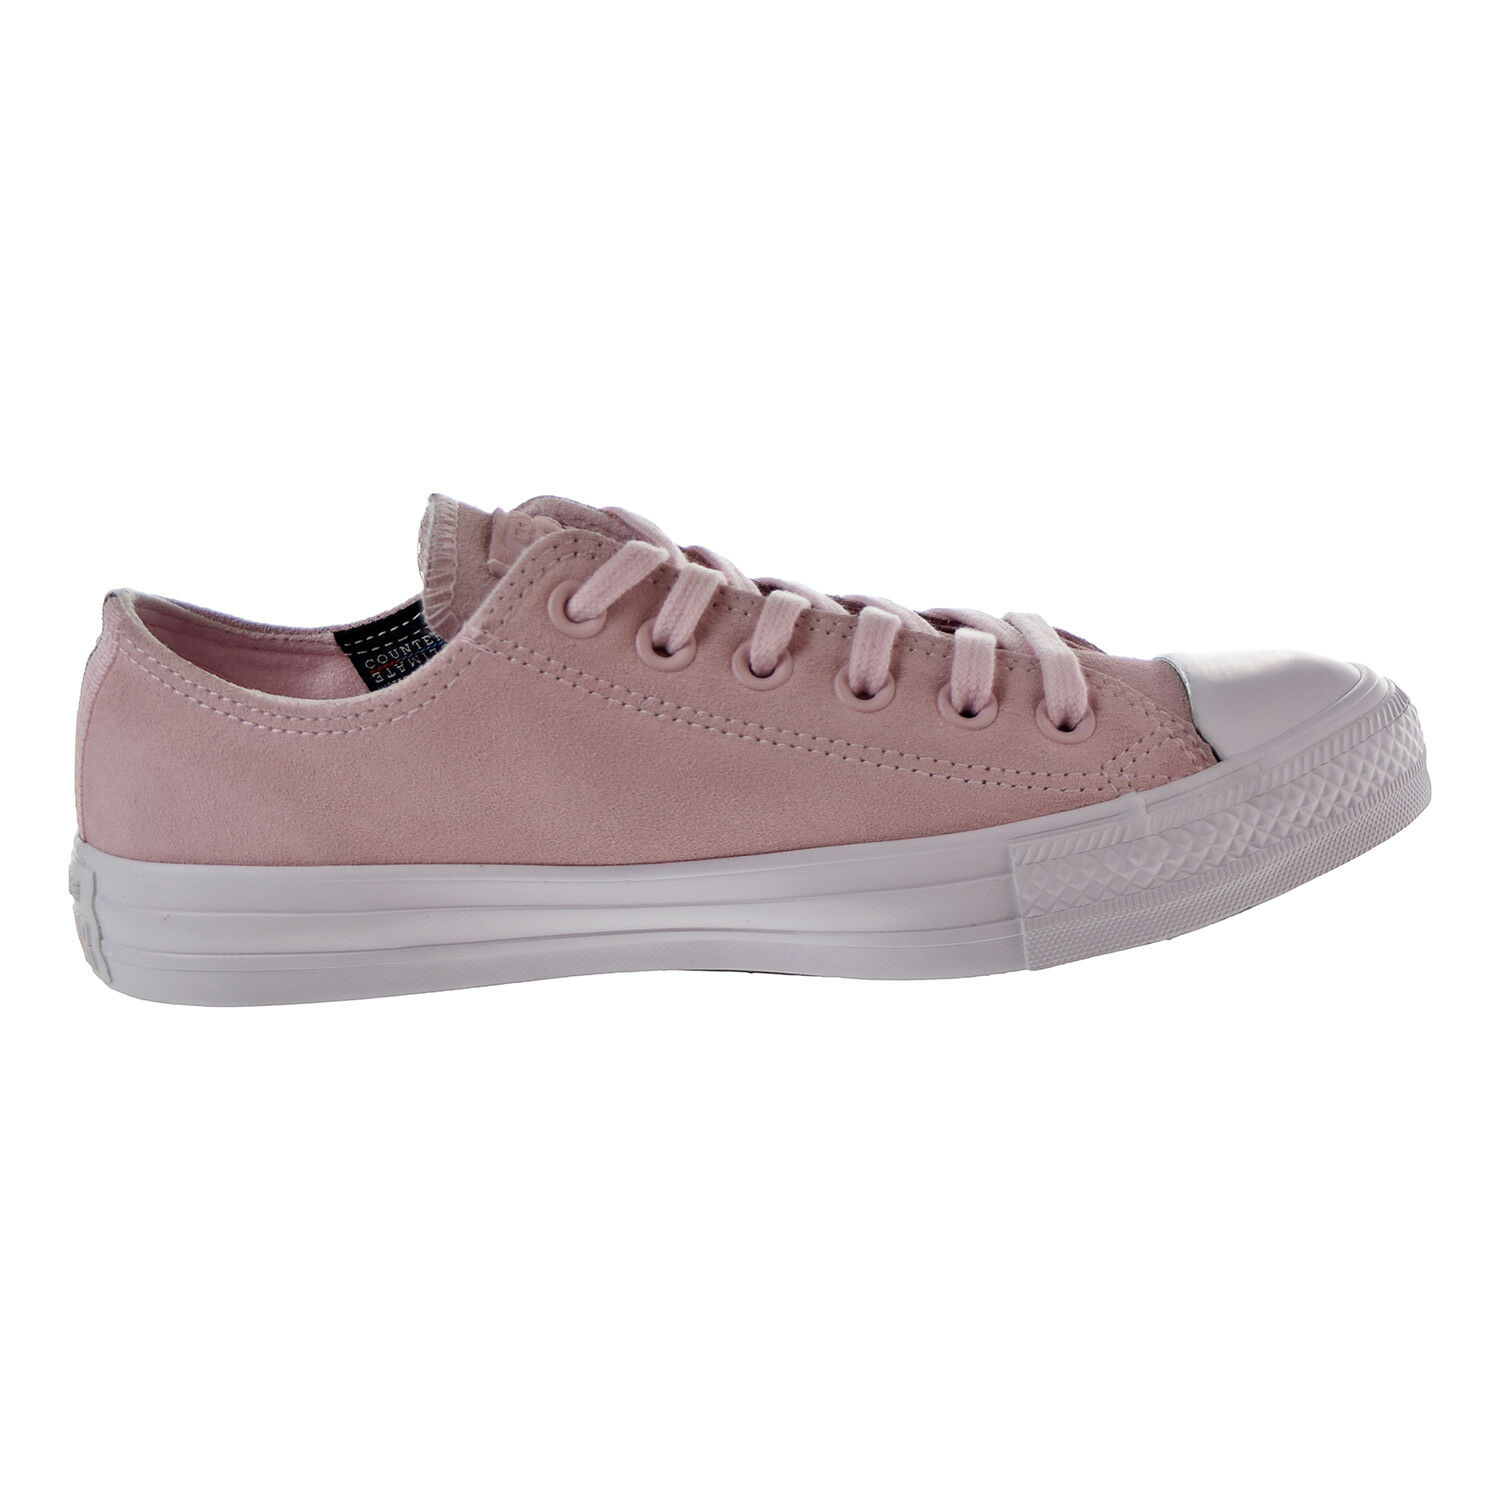 Converse CT All Star Ox Counter Climate Unisex Shoes Arctic Pink/White 159349c